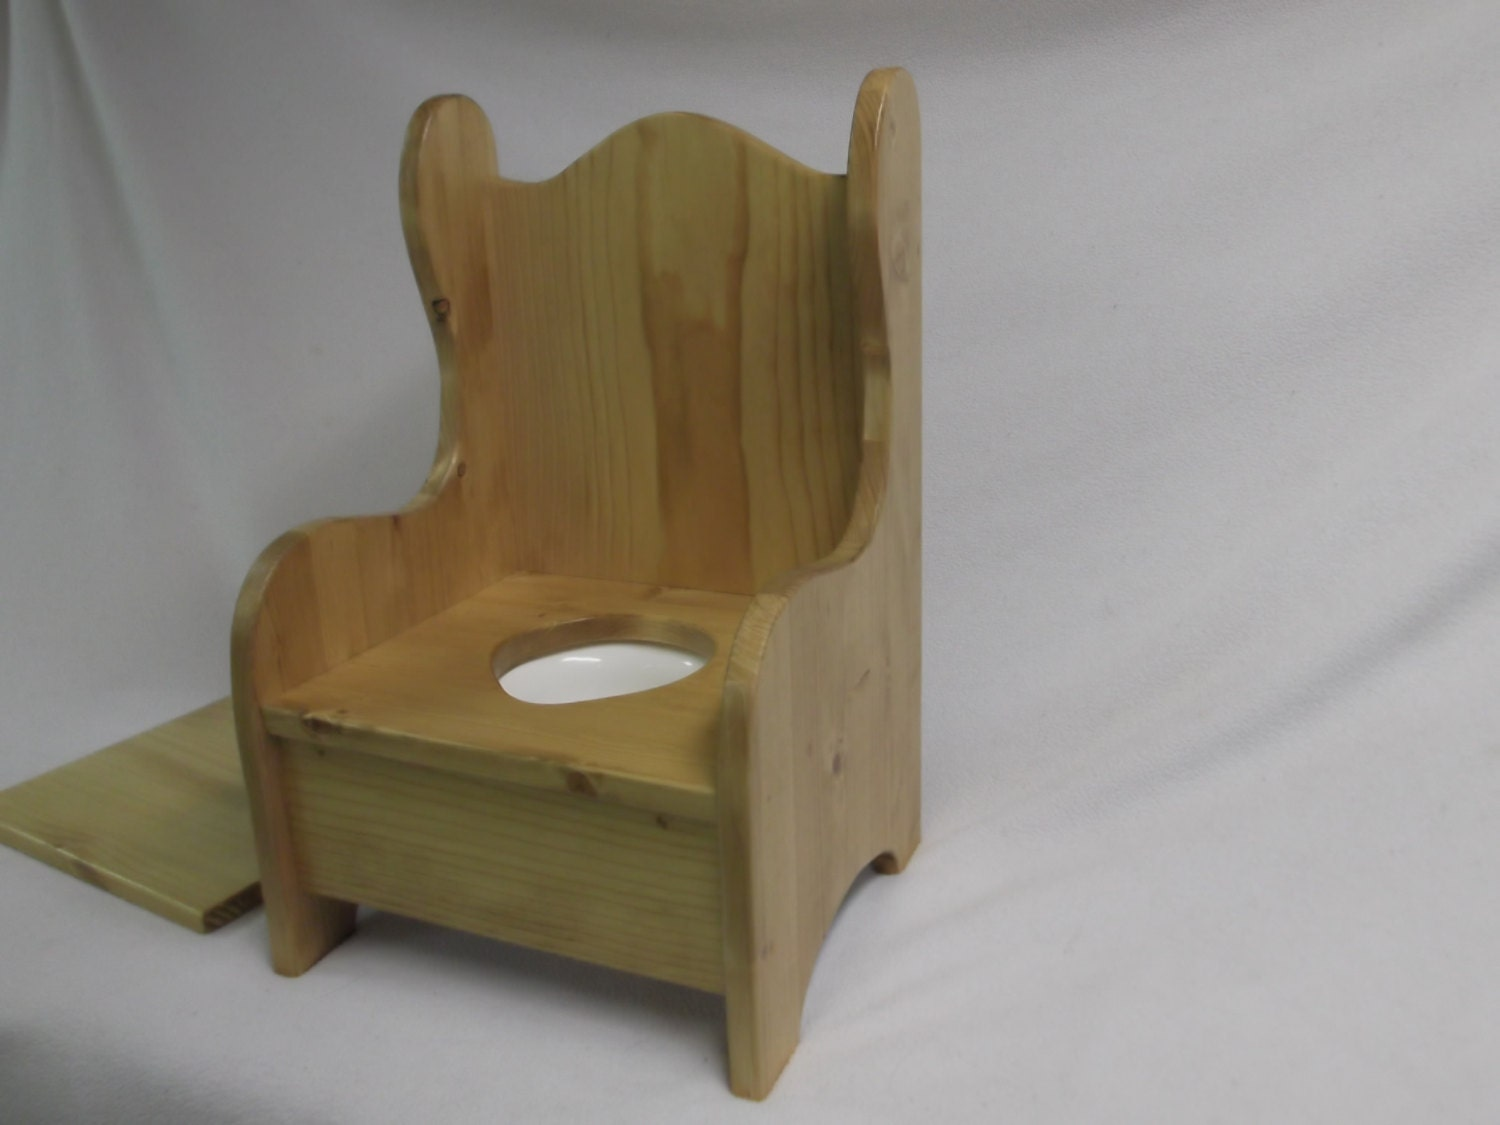 Superbe Wooden Potty Chair